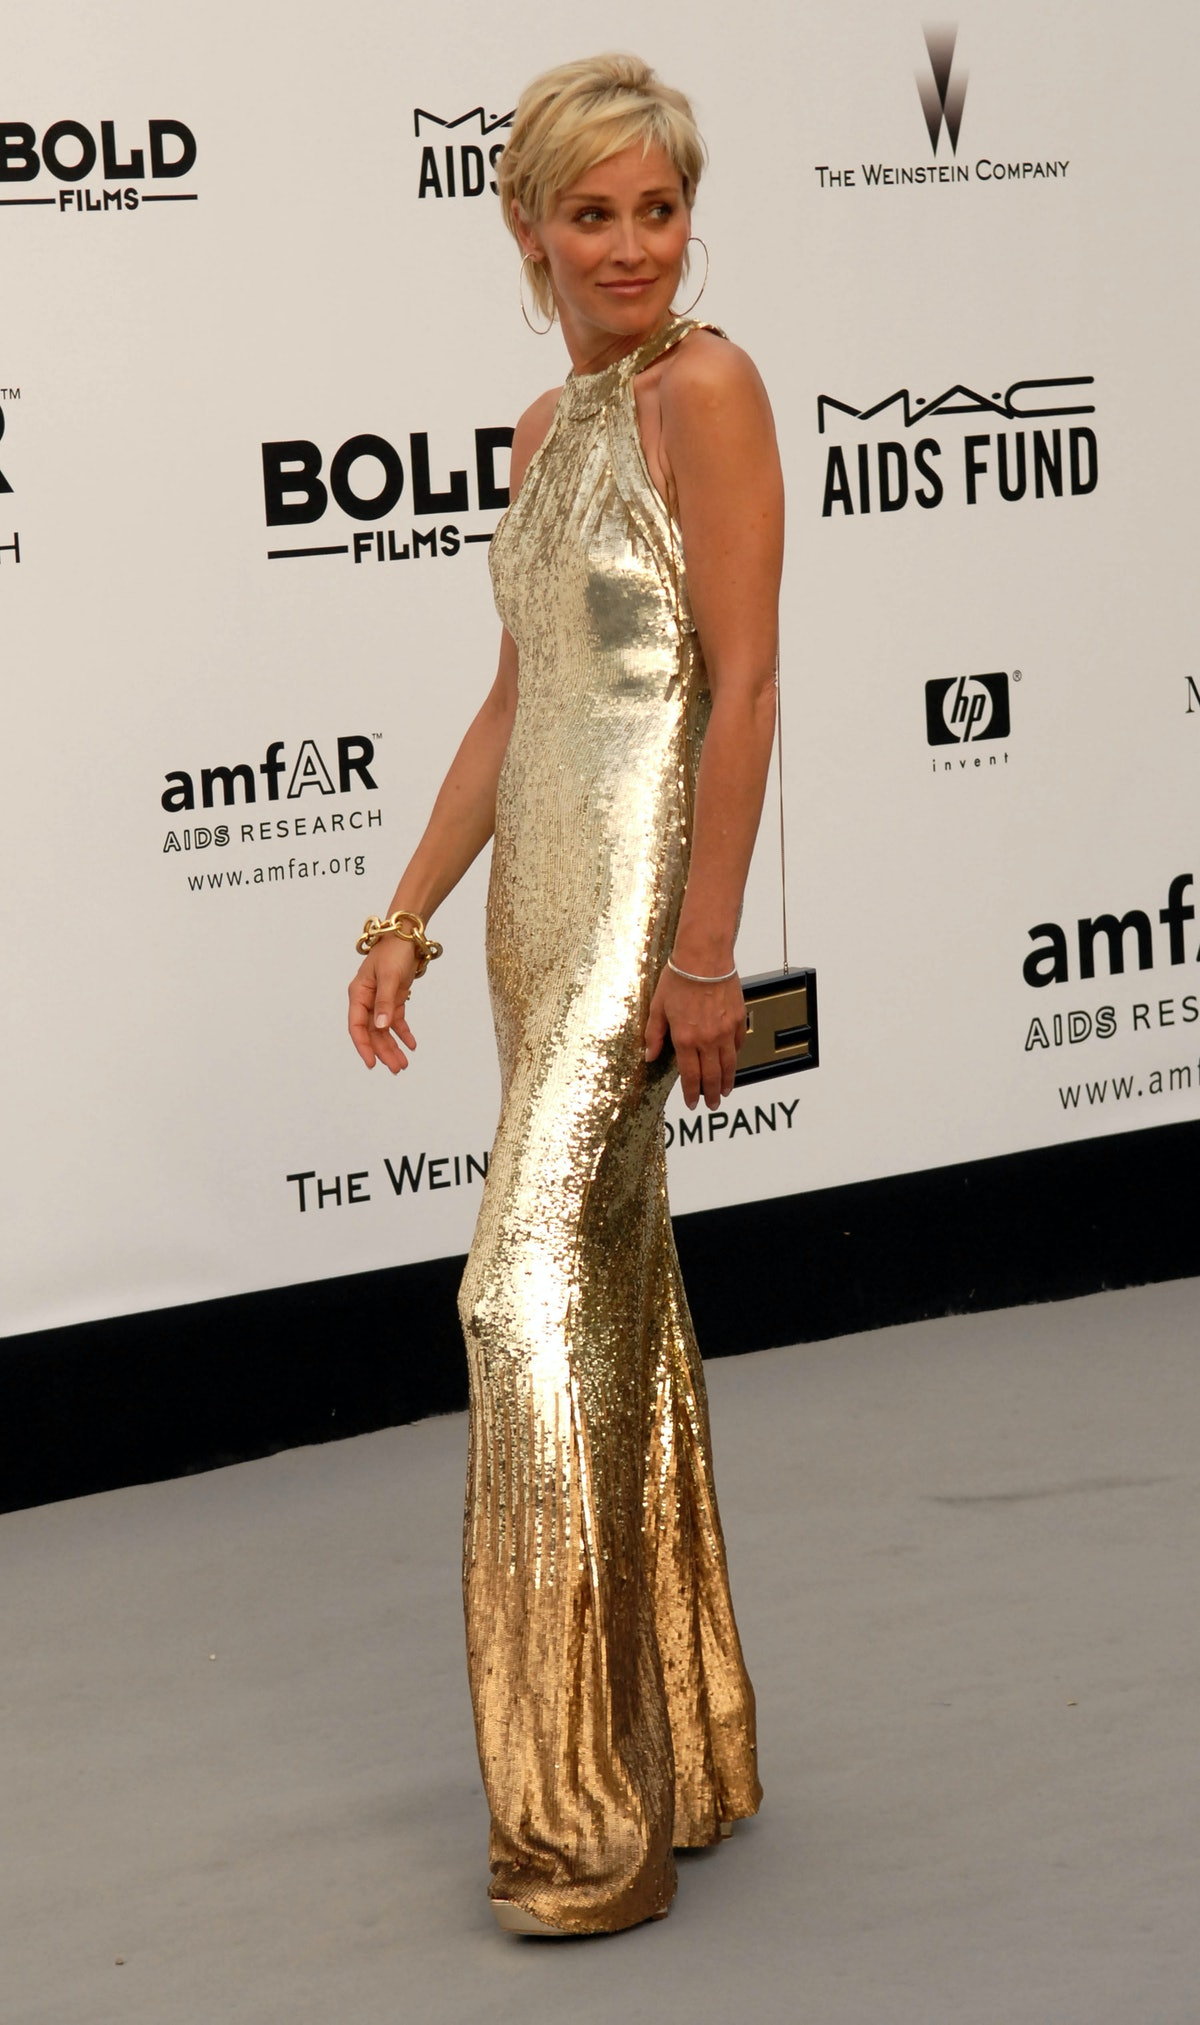 amfAR's Cinema Against AIDS Presented By Bold Films, The M*A*C AIDS Fund and The Weinstein Company - Arrivals